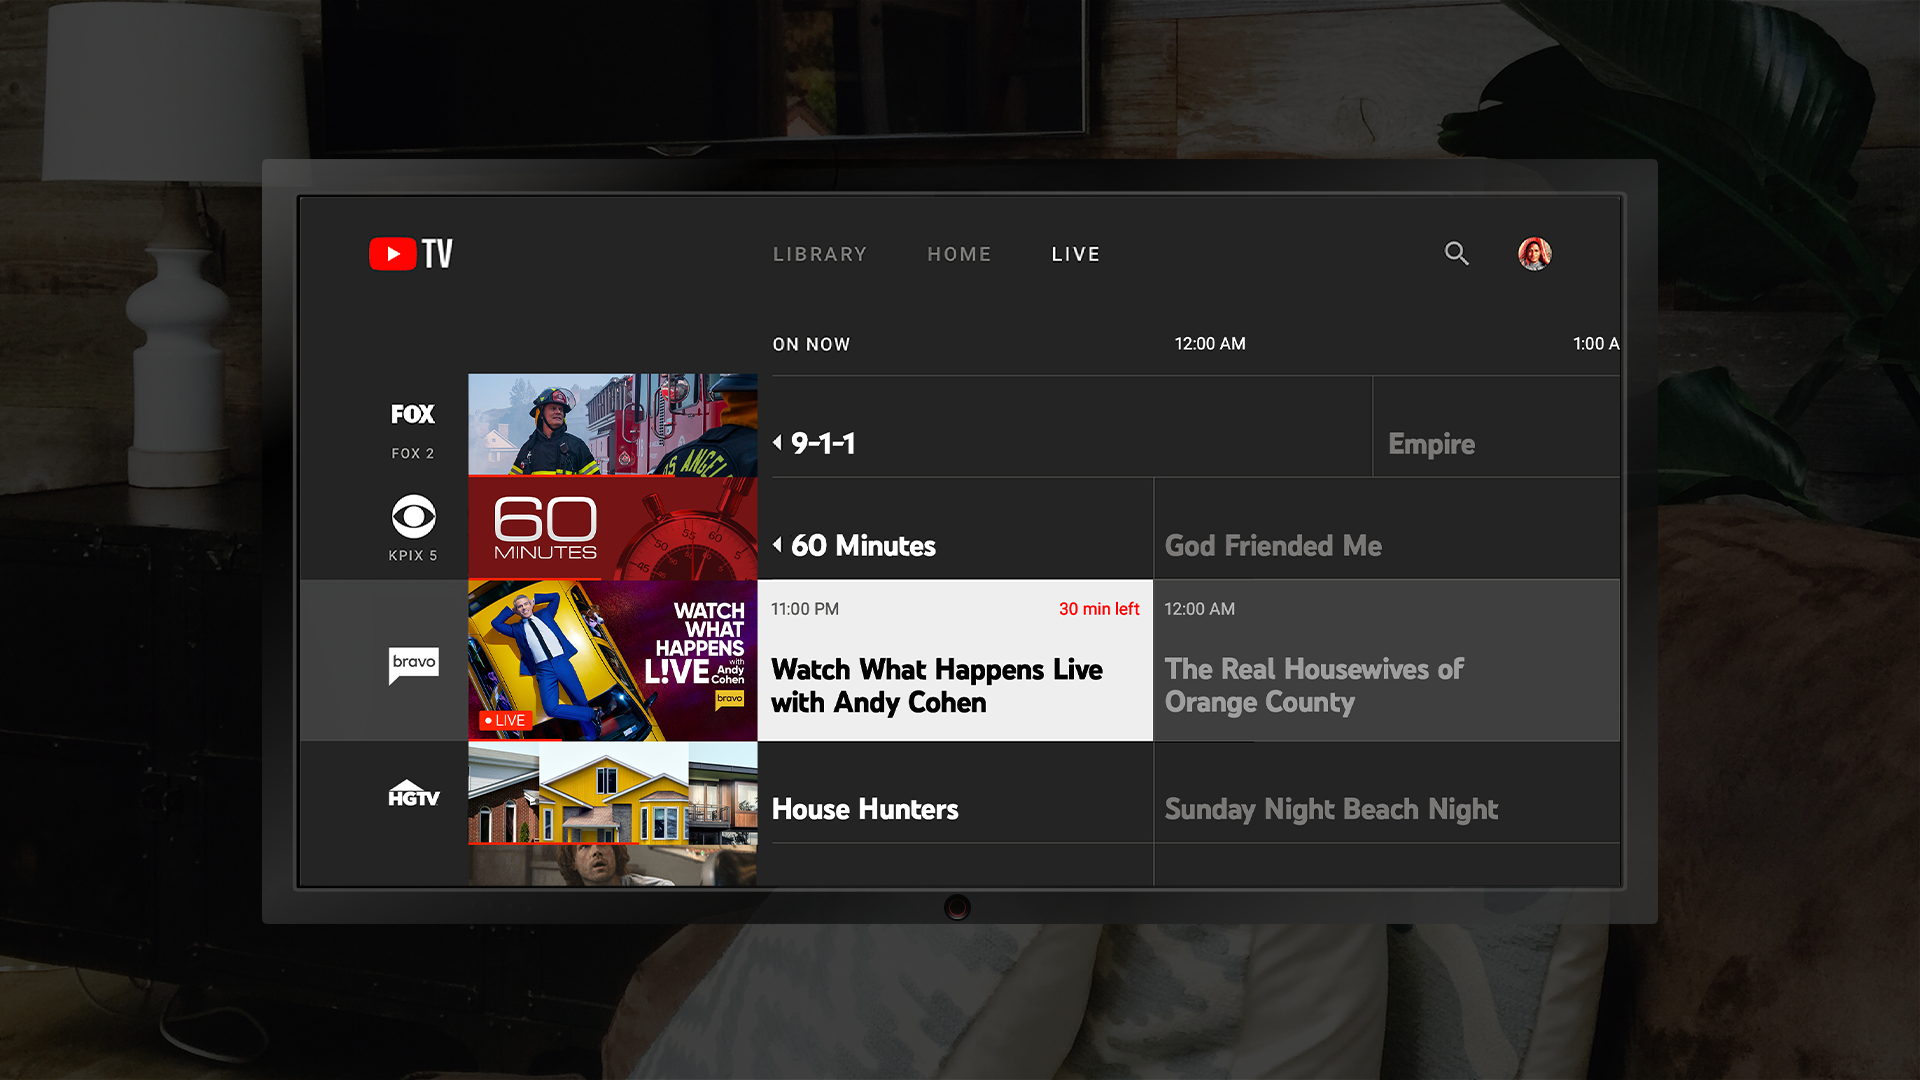 Youtube Tv Is Now Available On Fire Tv Devices Techcrunch Fire Tv Amazon Fire Tv Live Tv Streaming